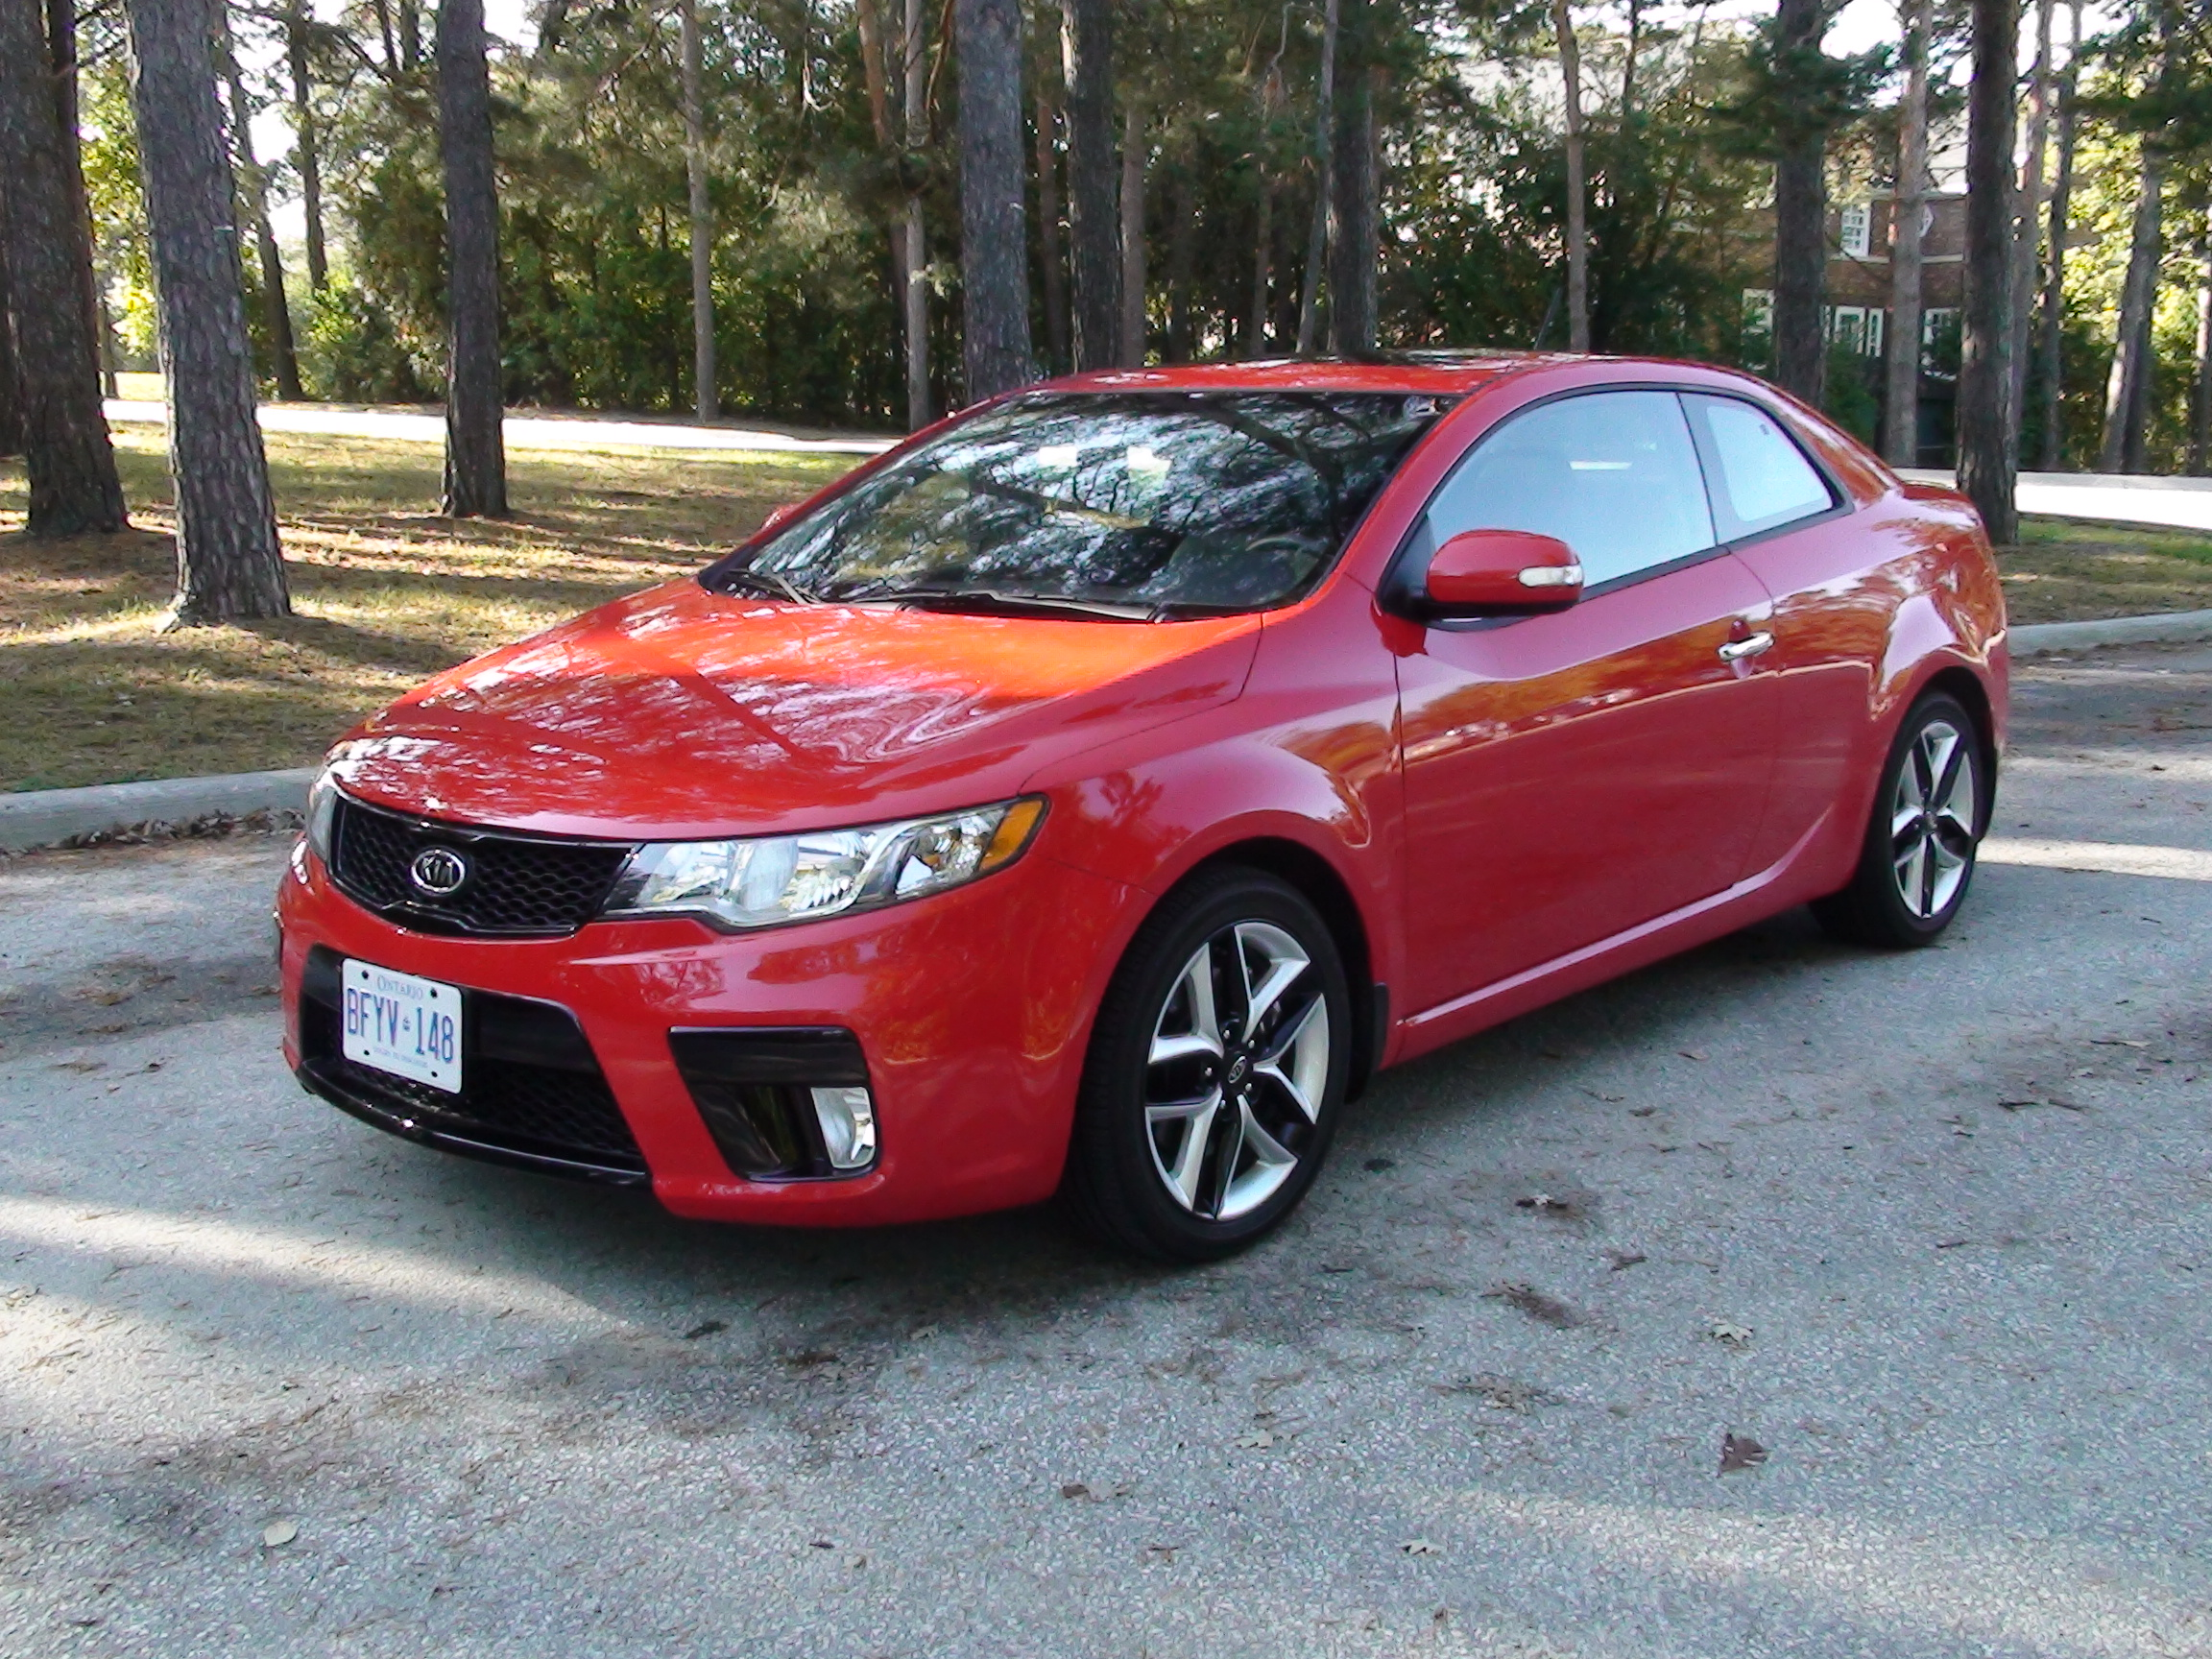 2010 kia forte koup pictures information and specs. Black Bedroom Furniture Sets. Home Design Ideas